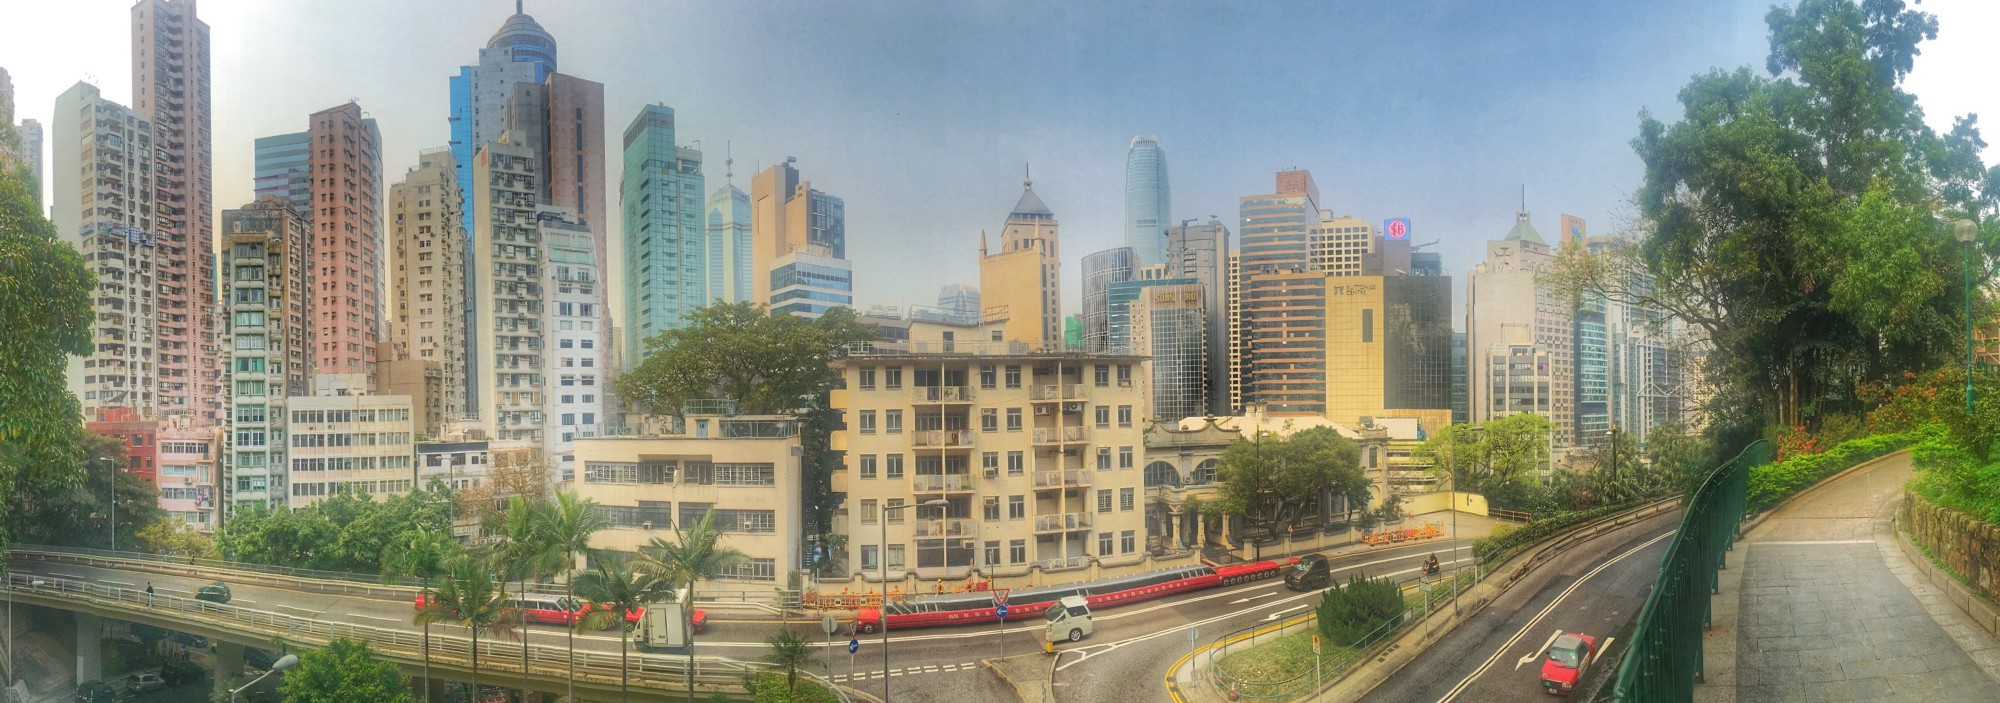 iPhone 6 panorama of Central Hong Kong from the Botanical Gardens